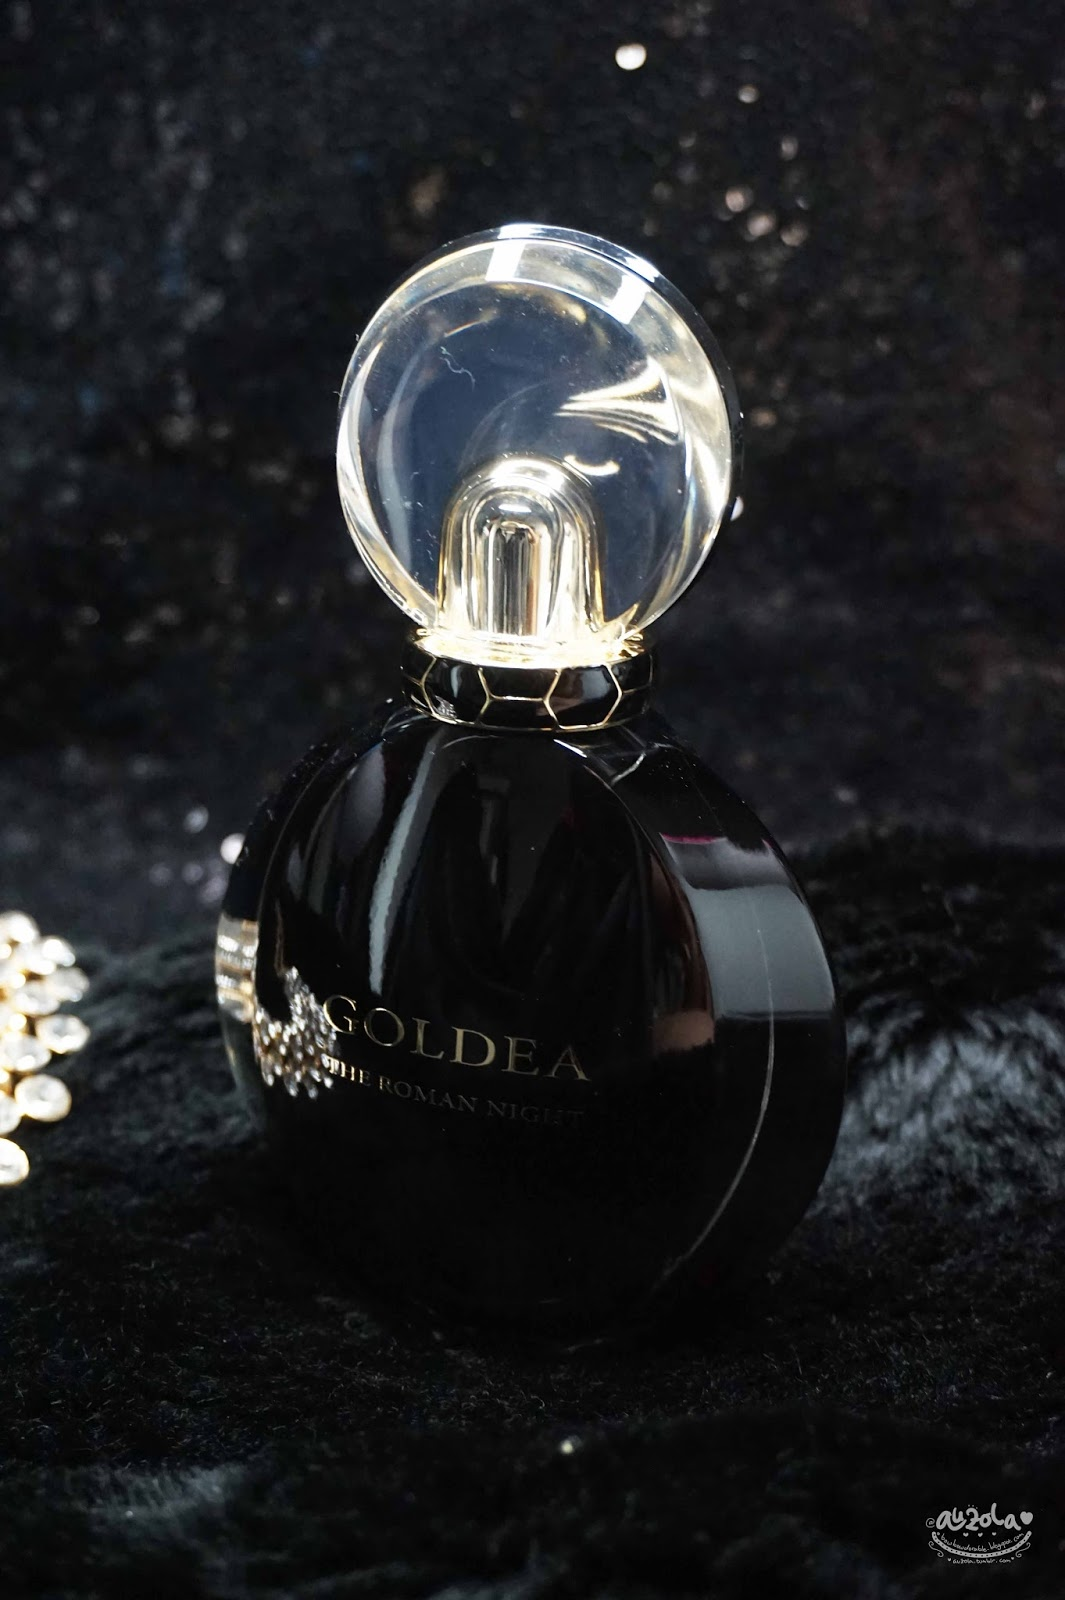 Rainbowdorable By Auzola Indonesian Beauty Blogger Review Mustika Ratu Eau De Parfume Tube Rose Musk Cloaked In Black And Textured Woody Scents Infuse The Identity Of Fragrance While They Add Feminine Strength Charisma